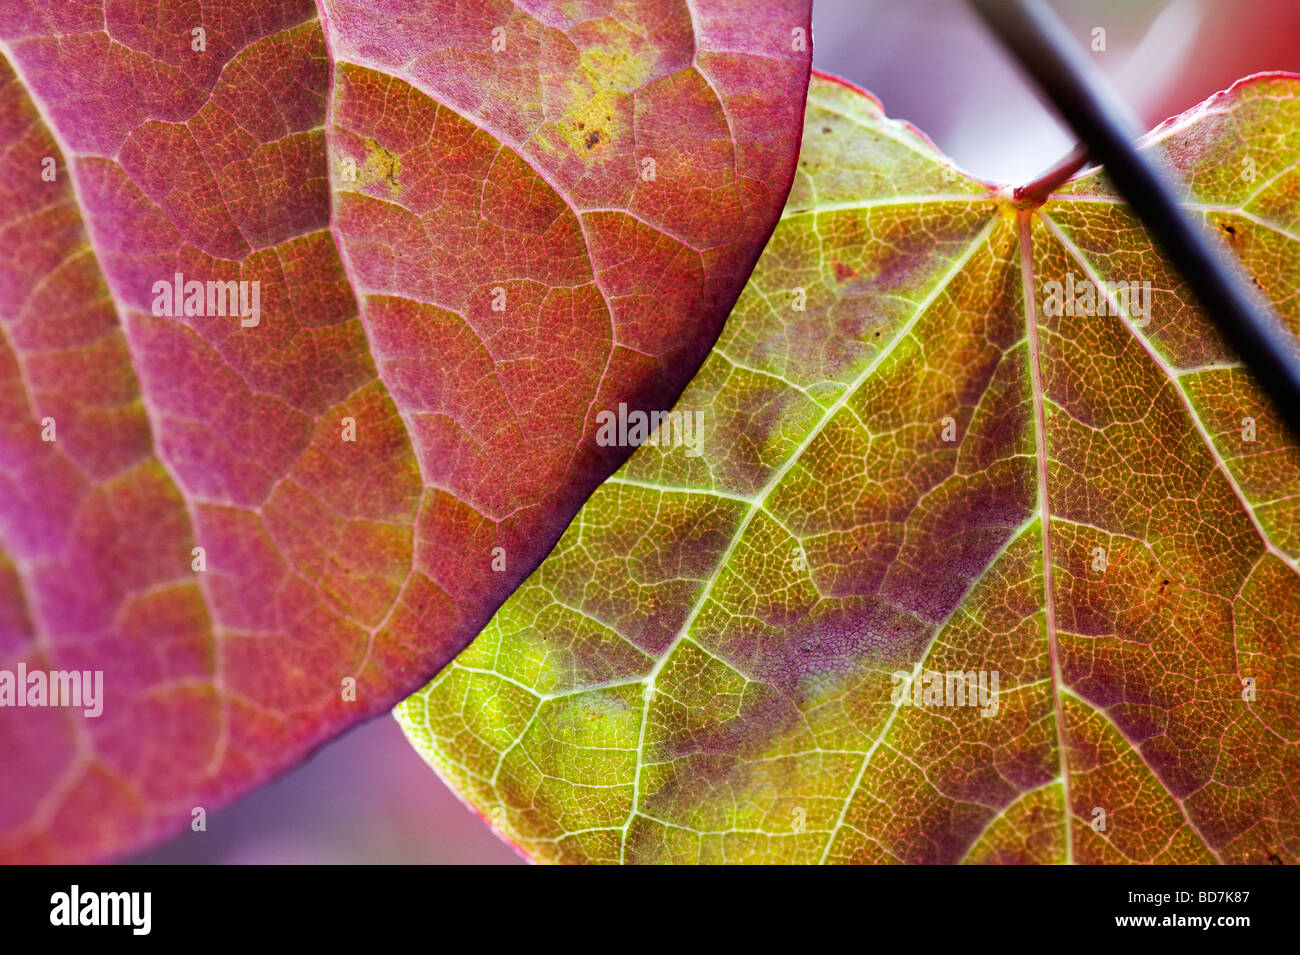 Cercis canadensis 'Forest pansy'. Eastern Redbud tree leaves - Stock Image